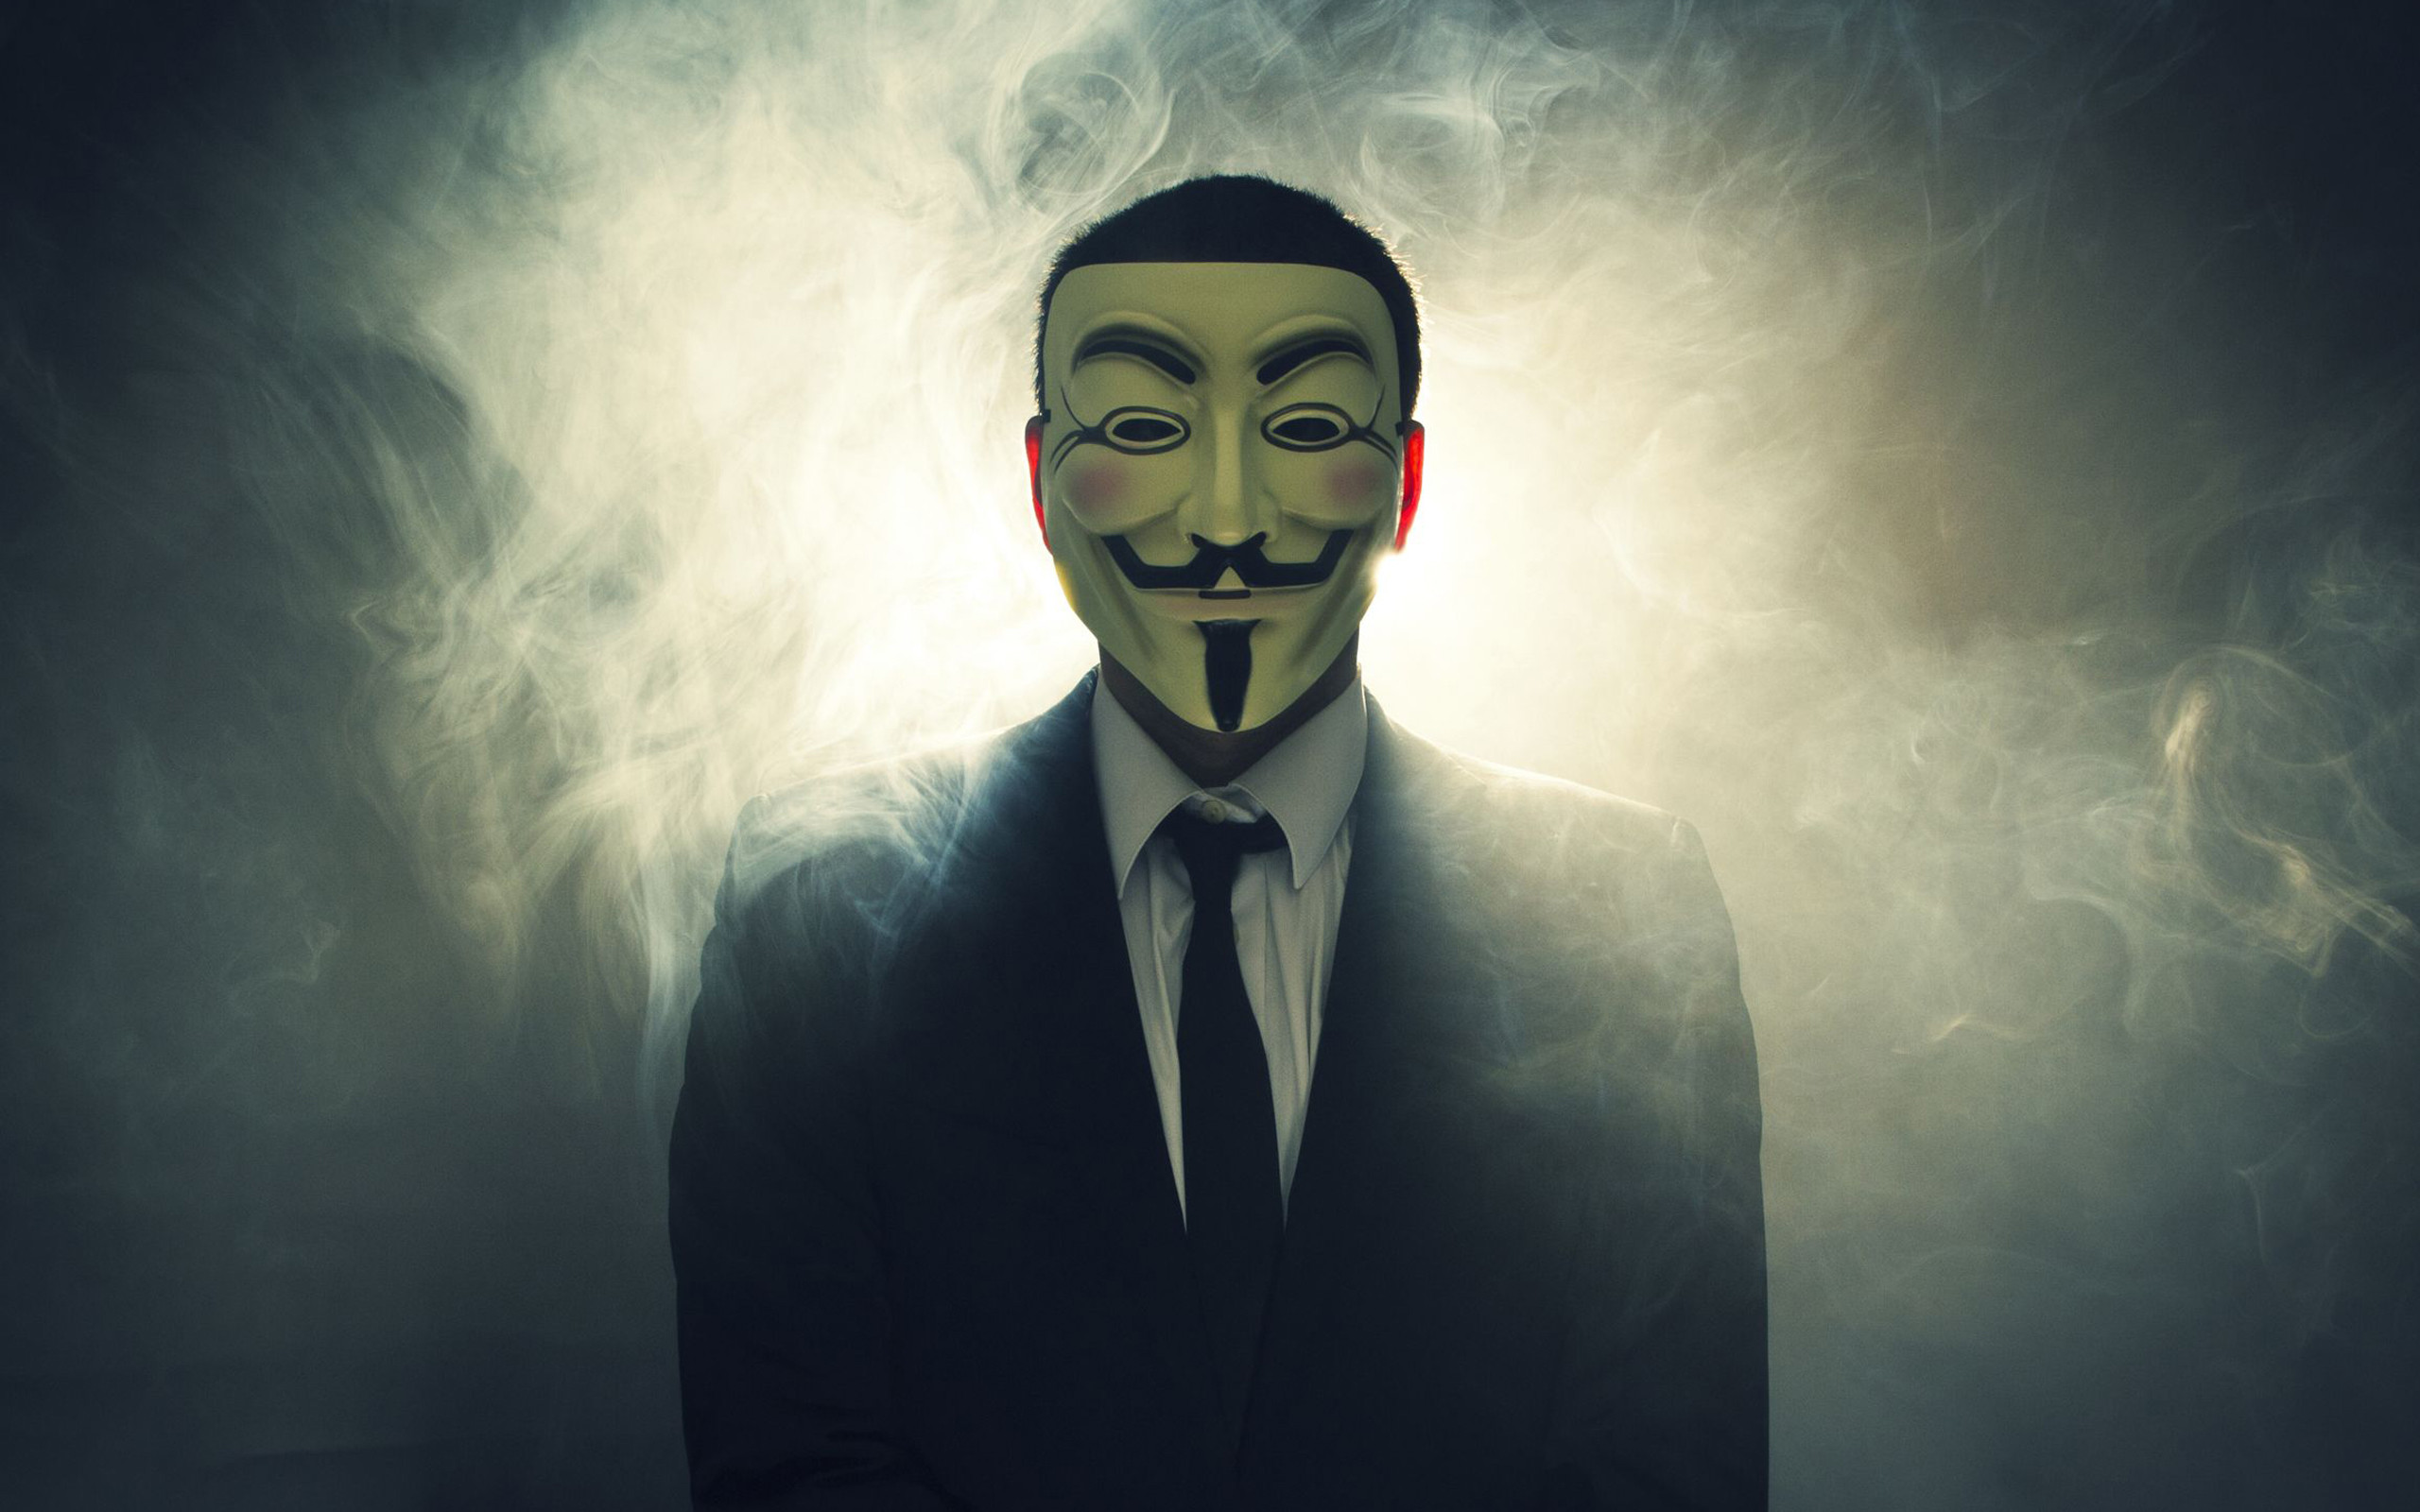 … anonymous wallpaper 7842; free anonymous hd …